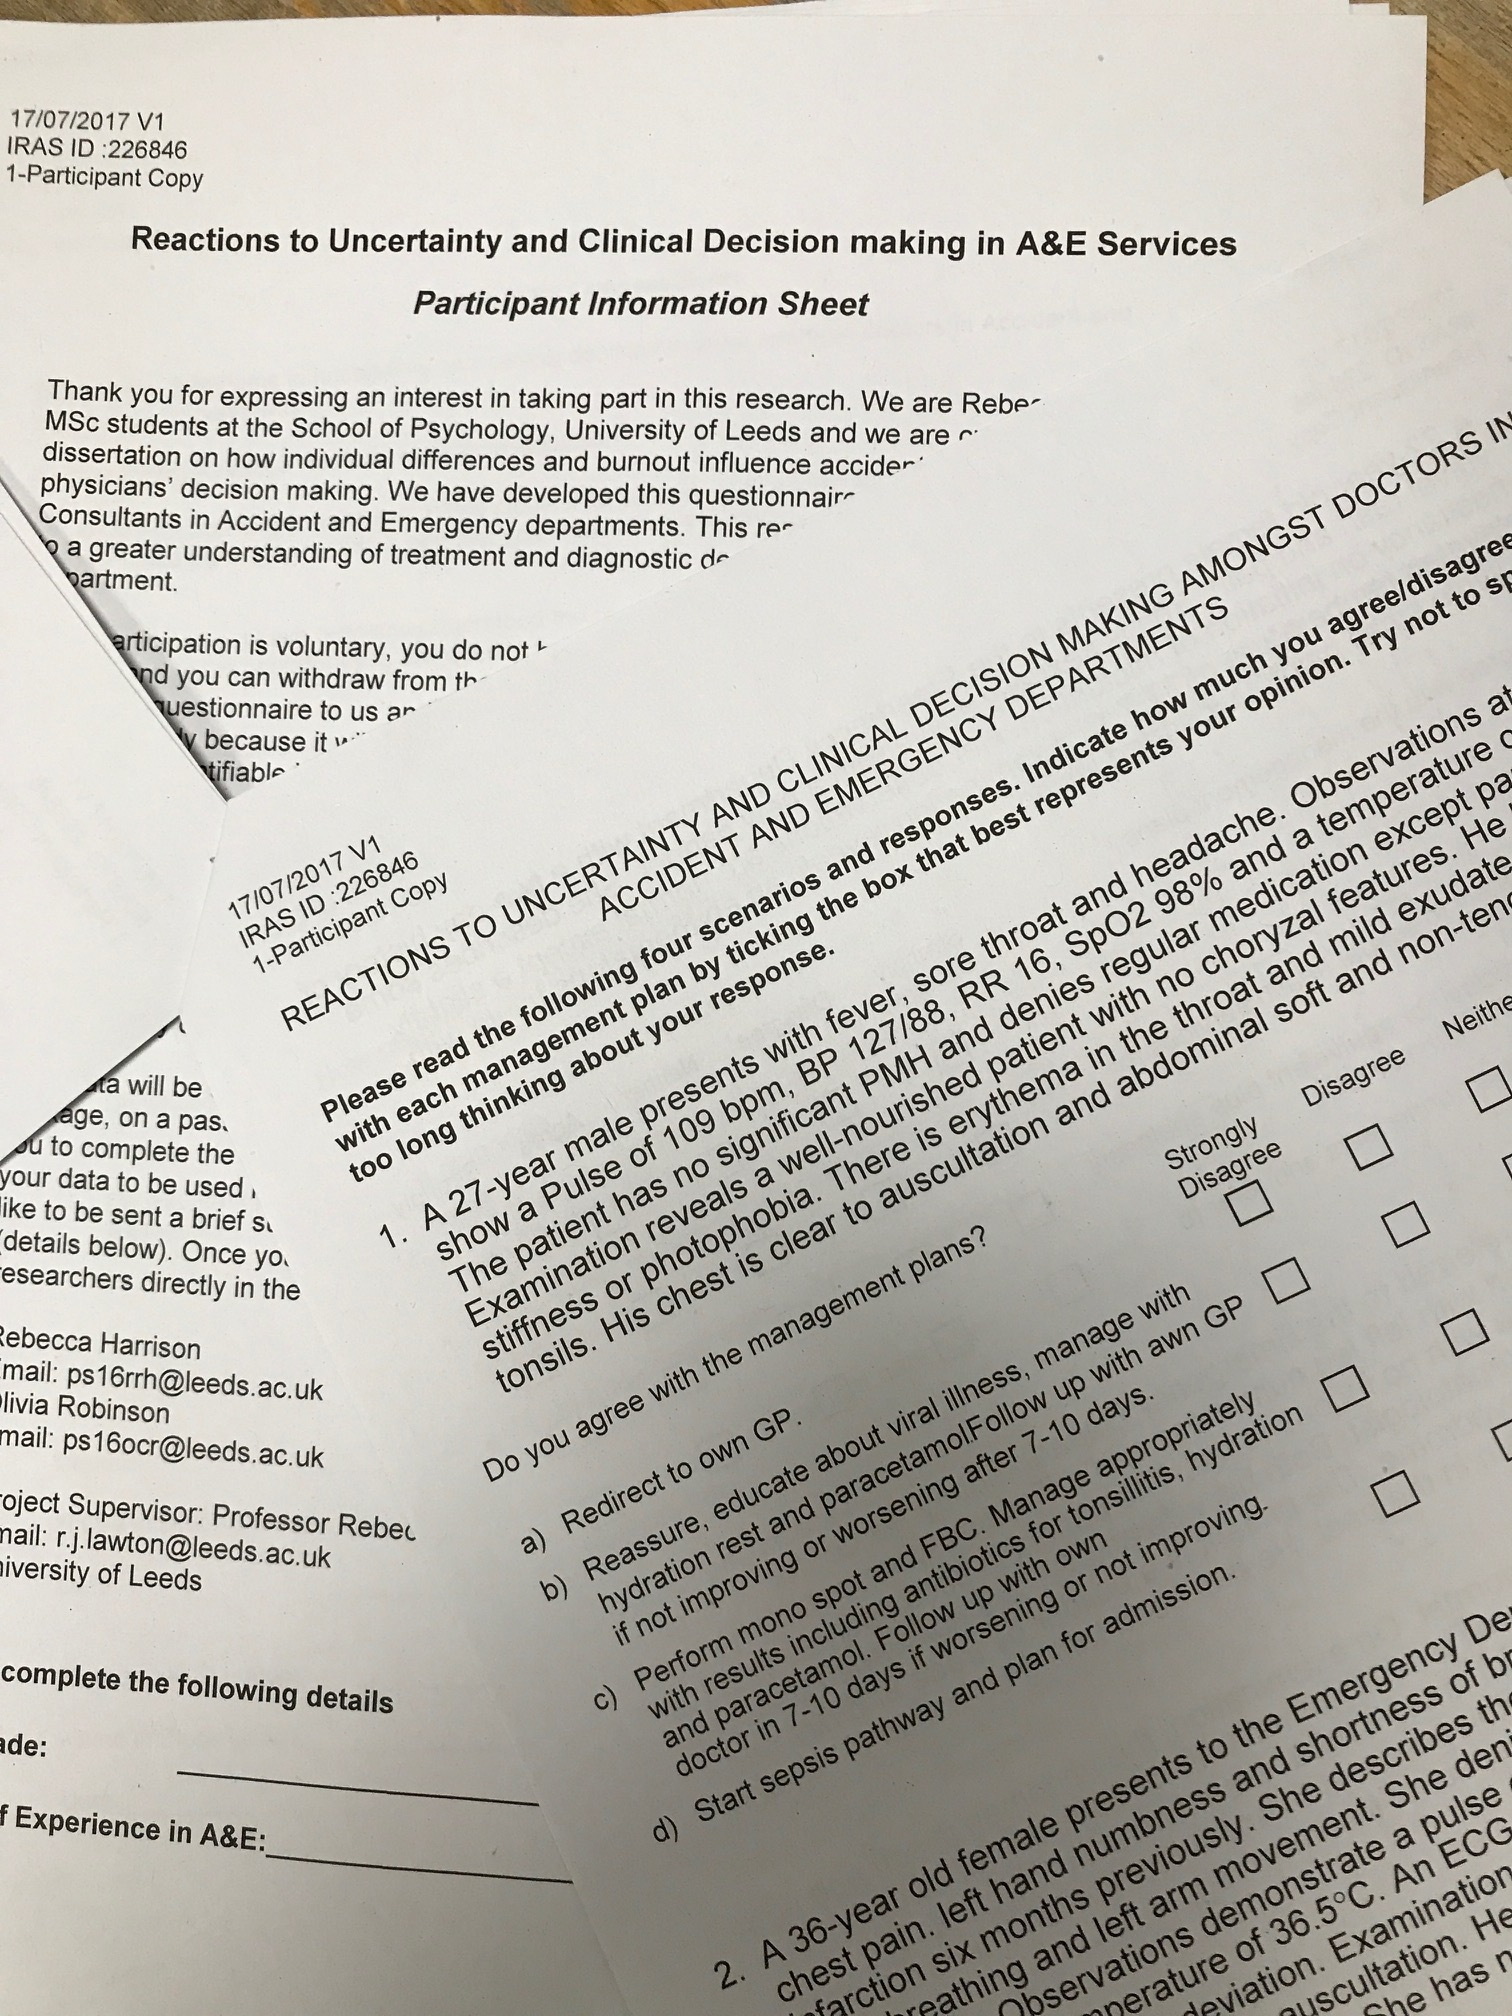 Patient Information Sheet and Questionnaire